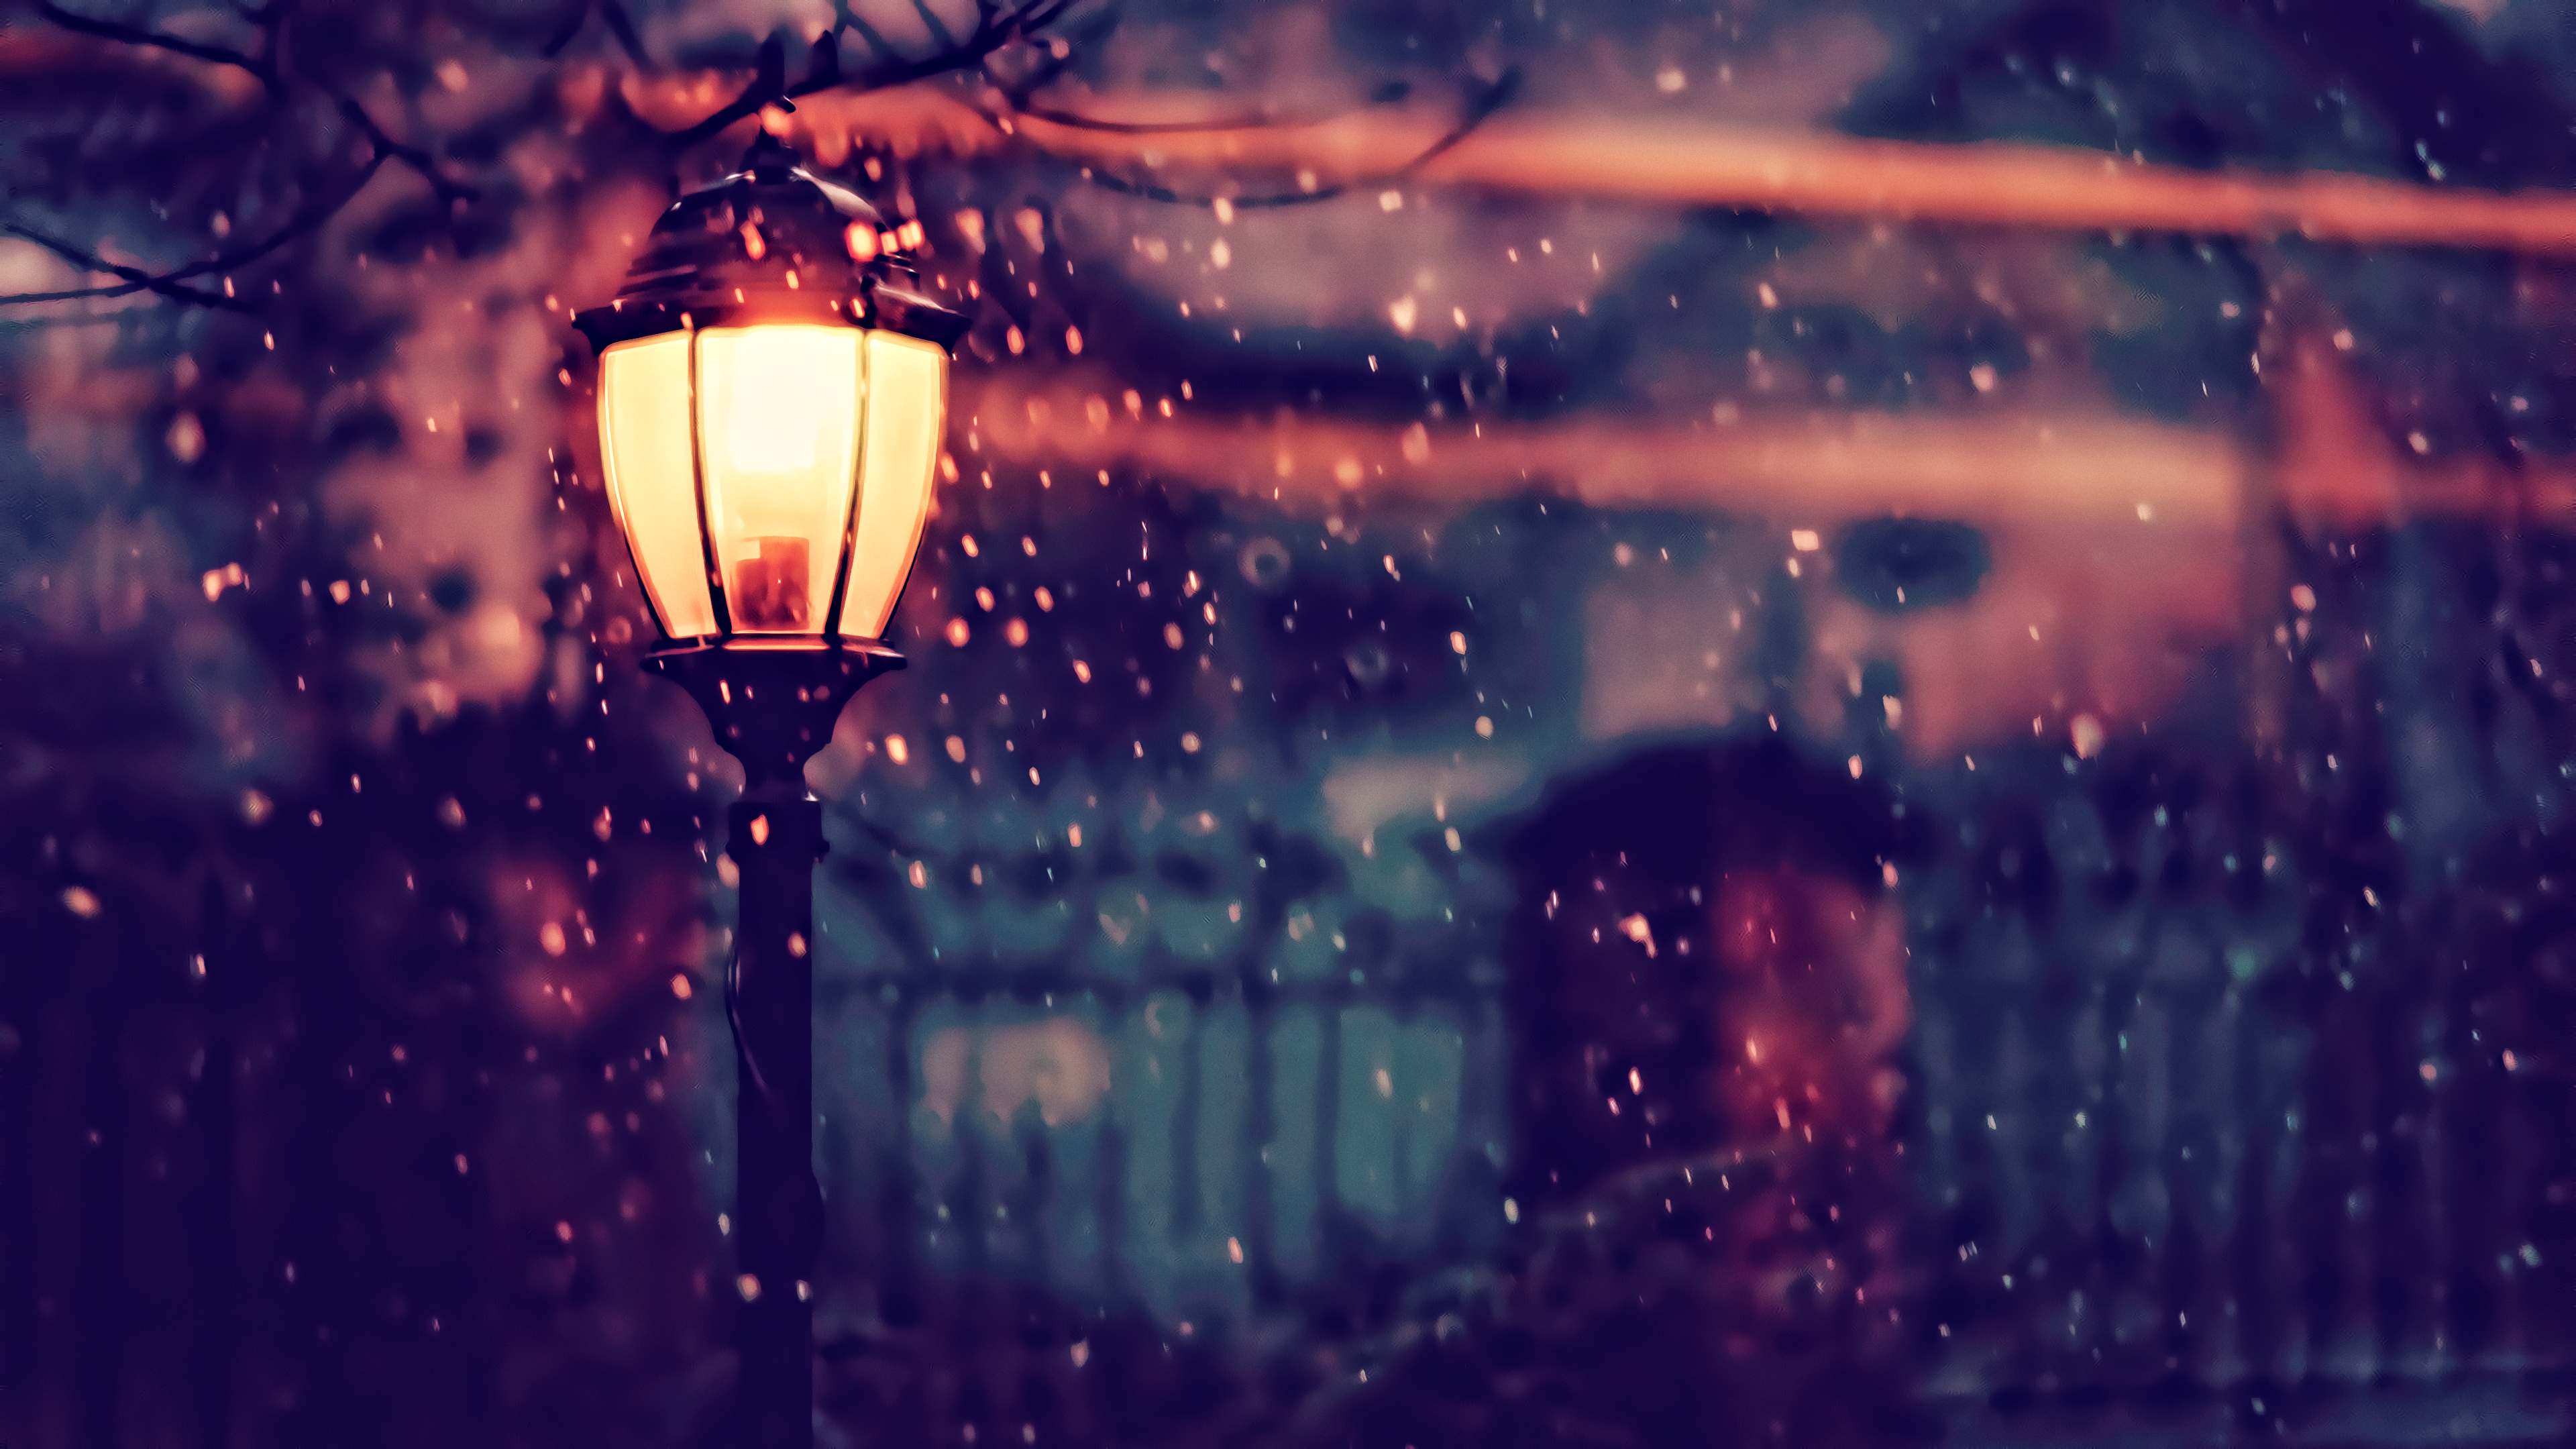 street light winter 4k hd photography 4k wallpapers